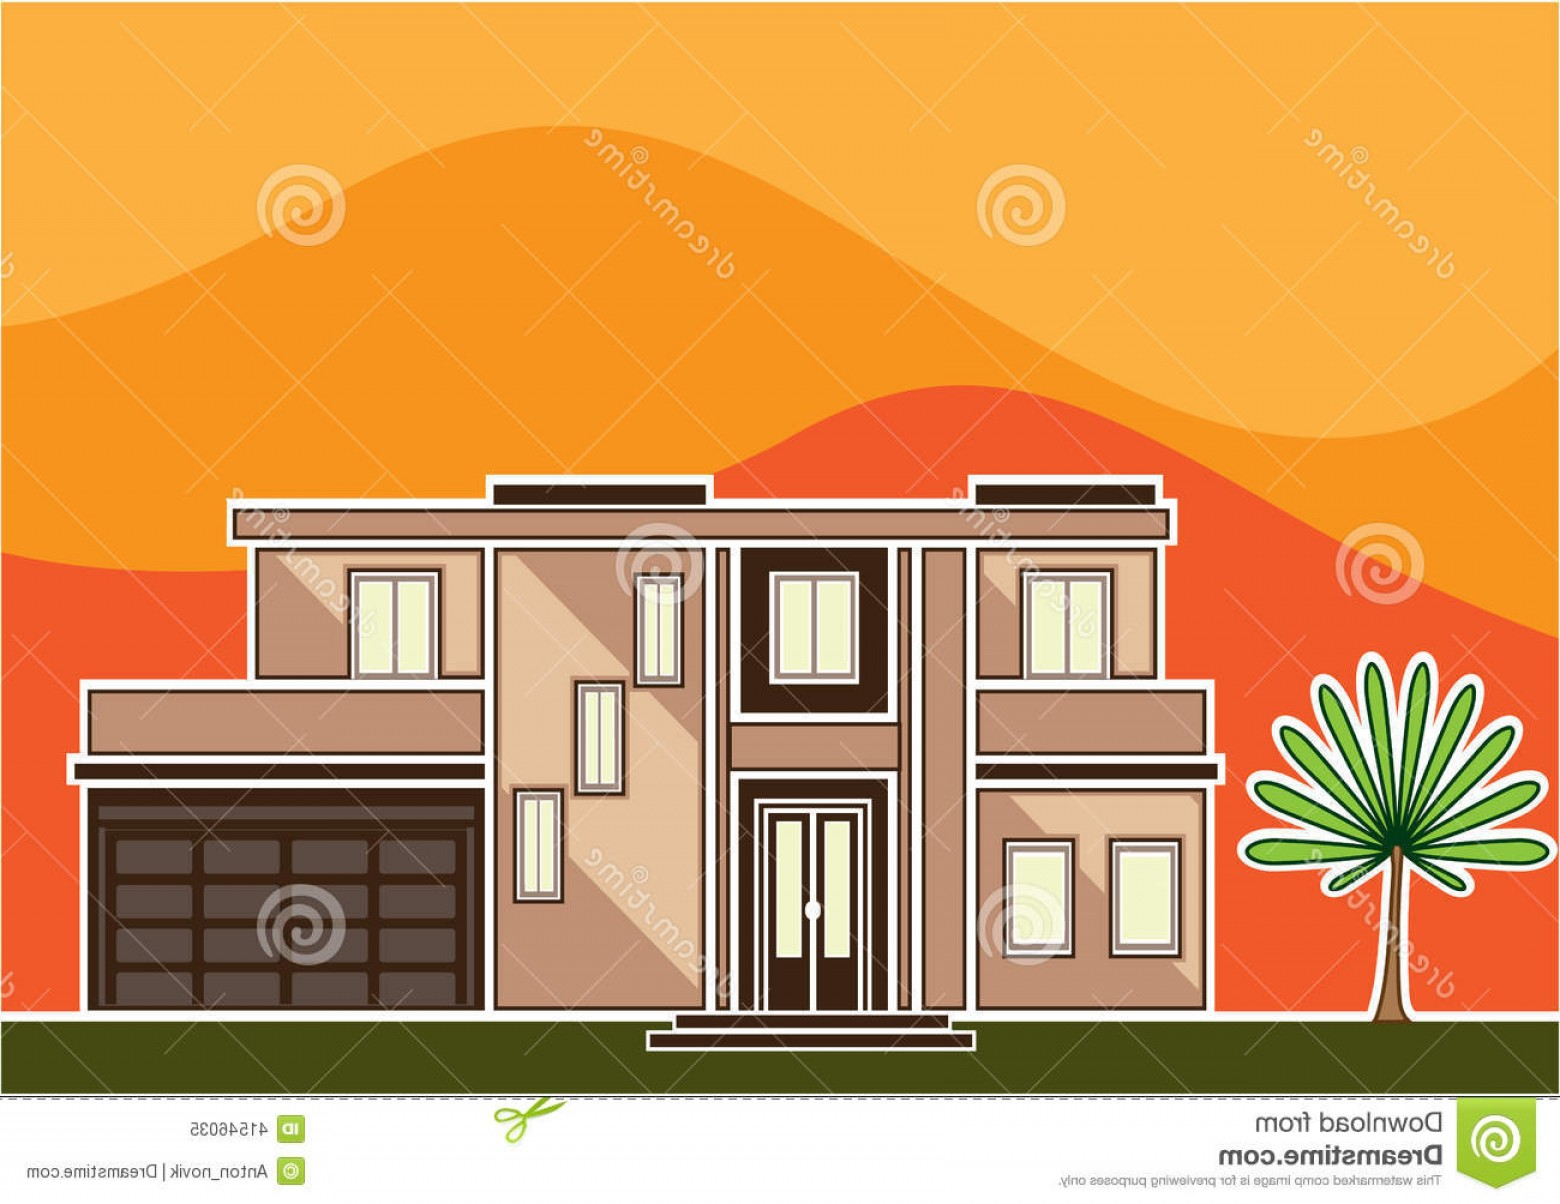 House Clip Art Vector: Stock Illustration Modern House Vector Illustration Clip Art Image